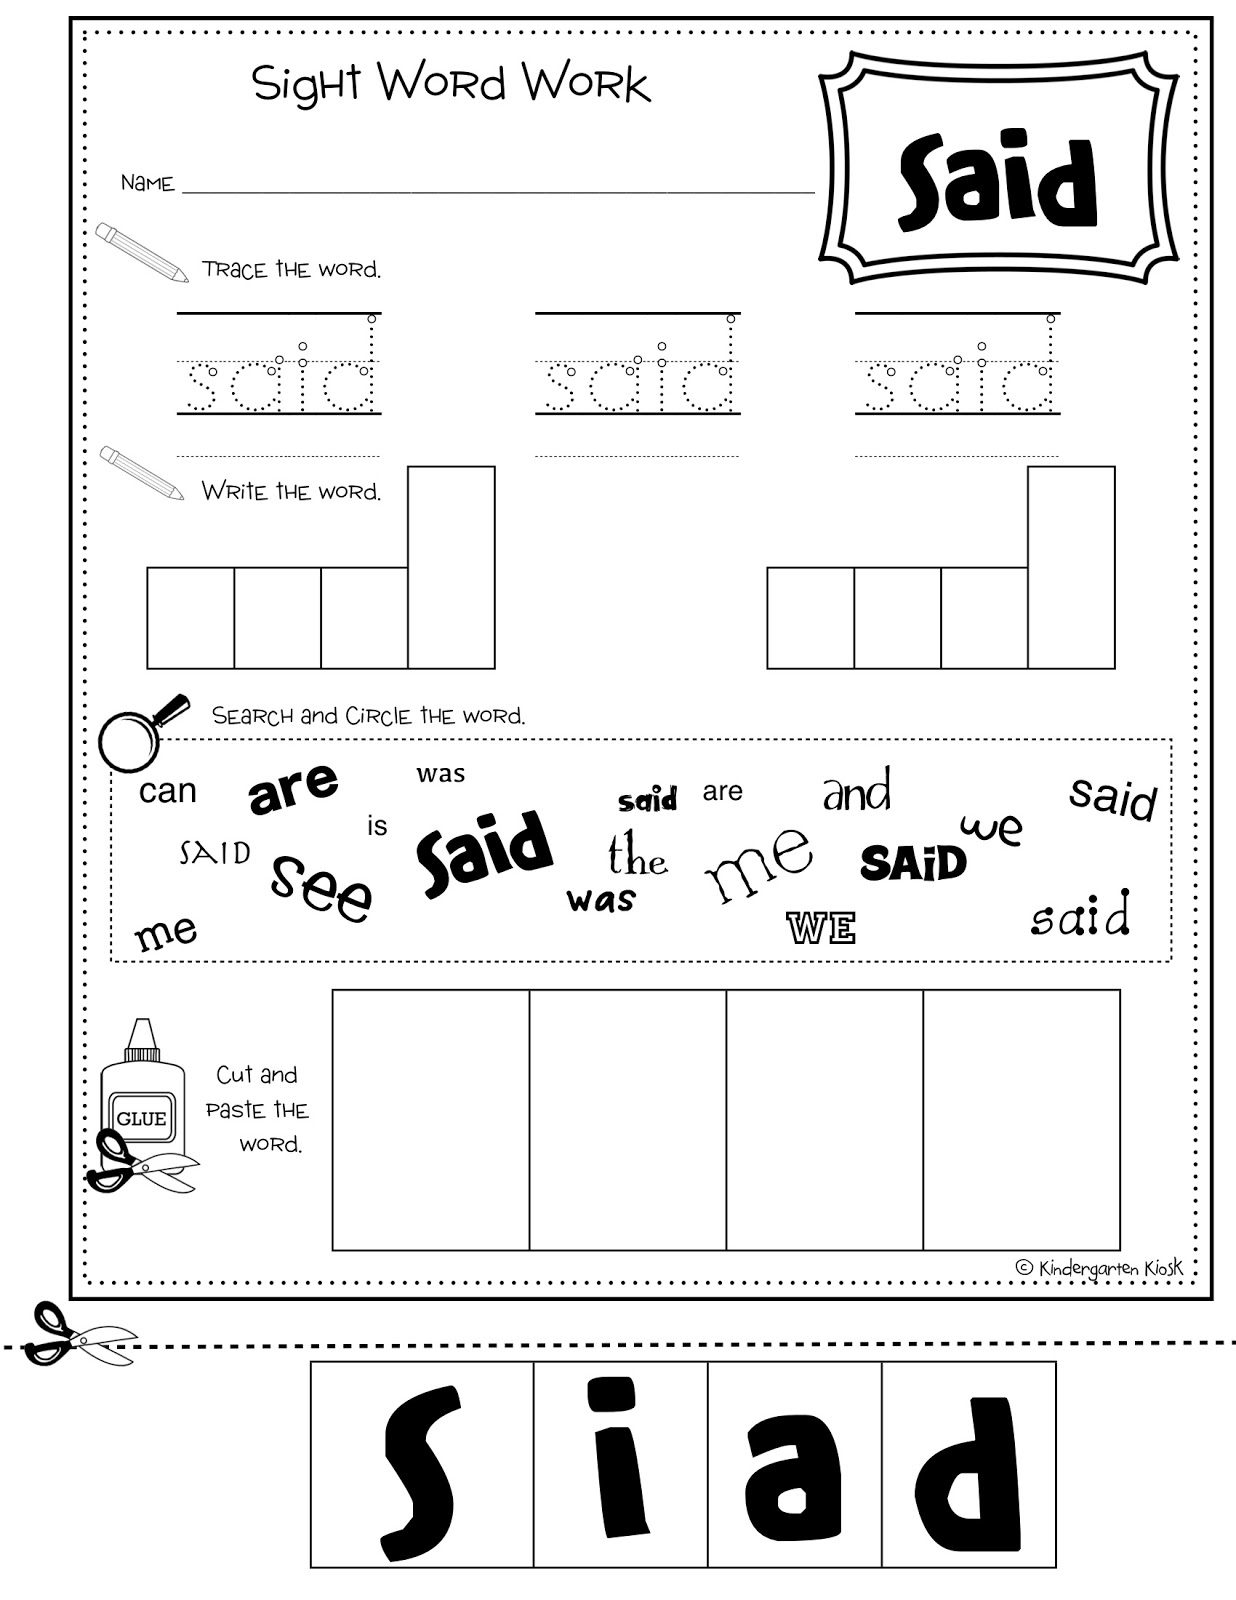 Word sight worksheet Sight Kiosk: your Multi word Task Kindergarten  Workbook